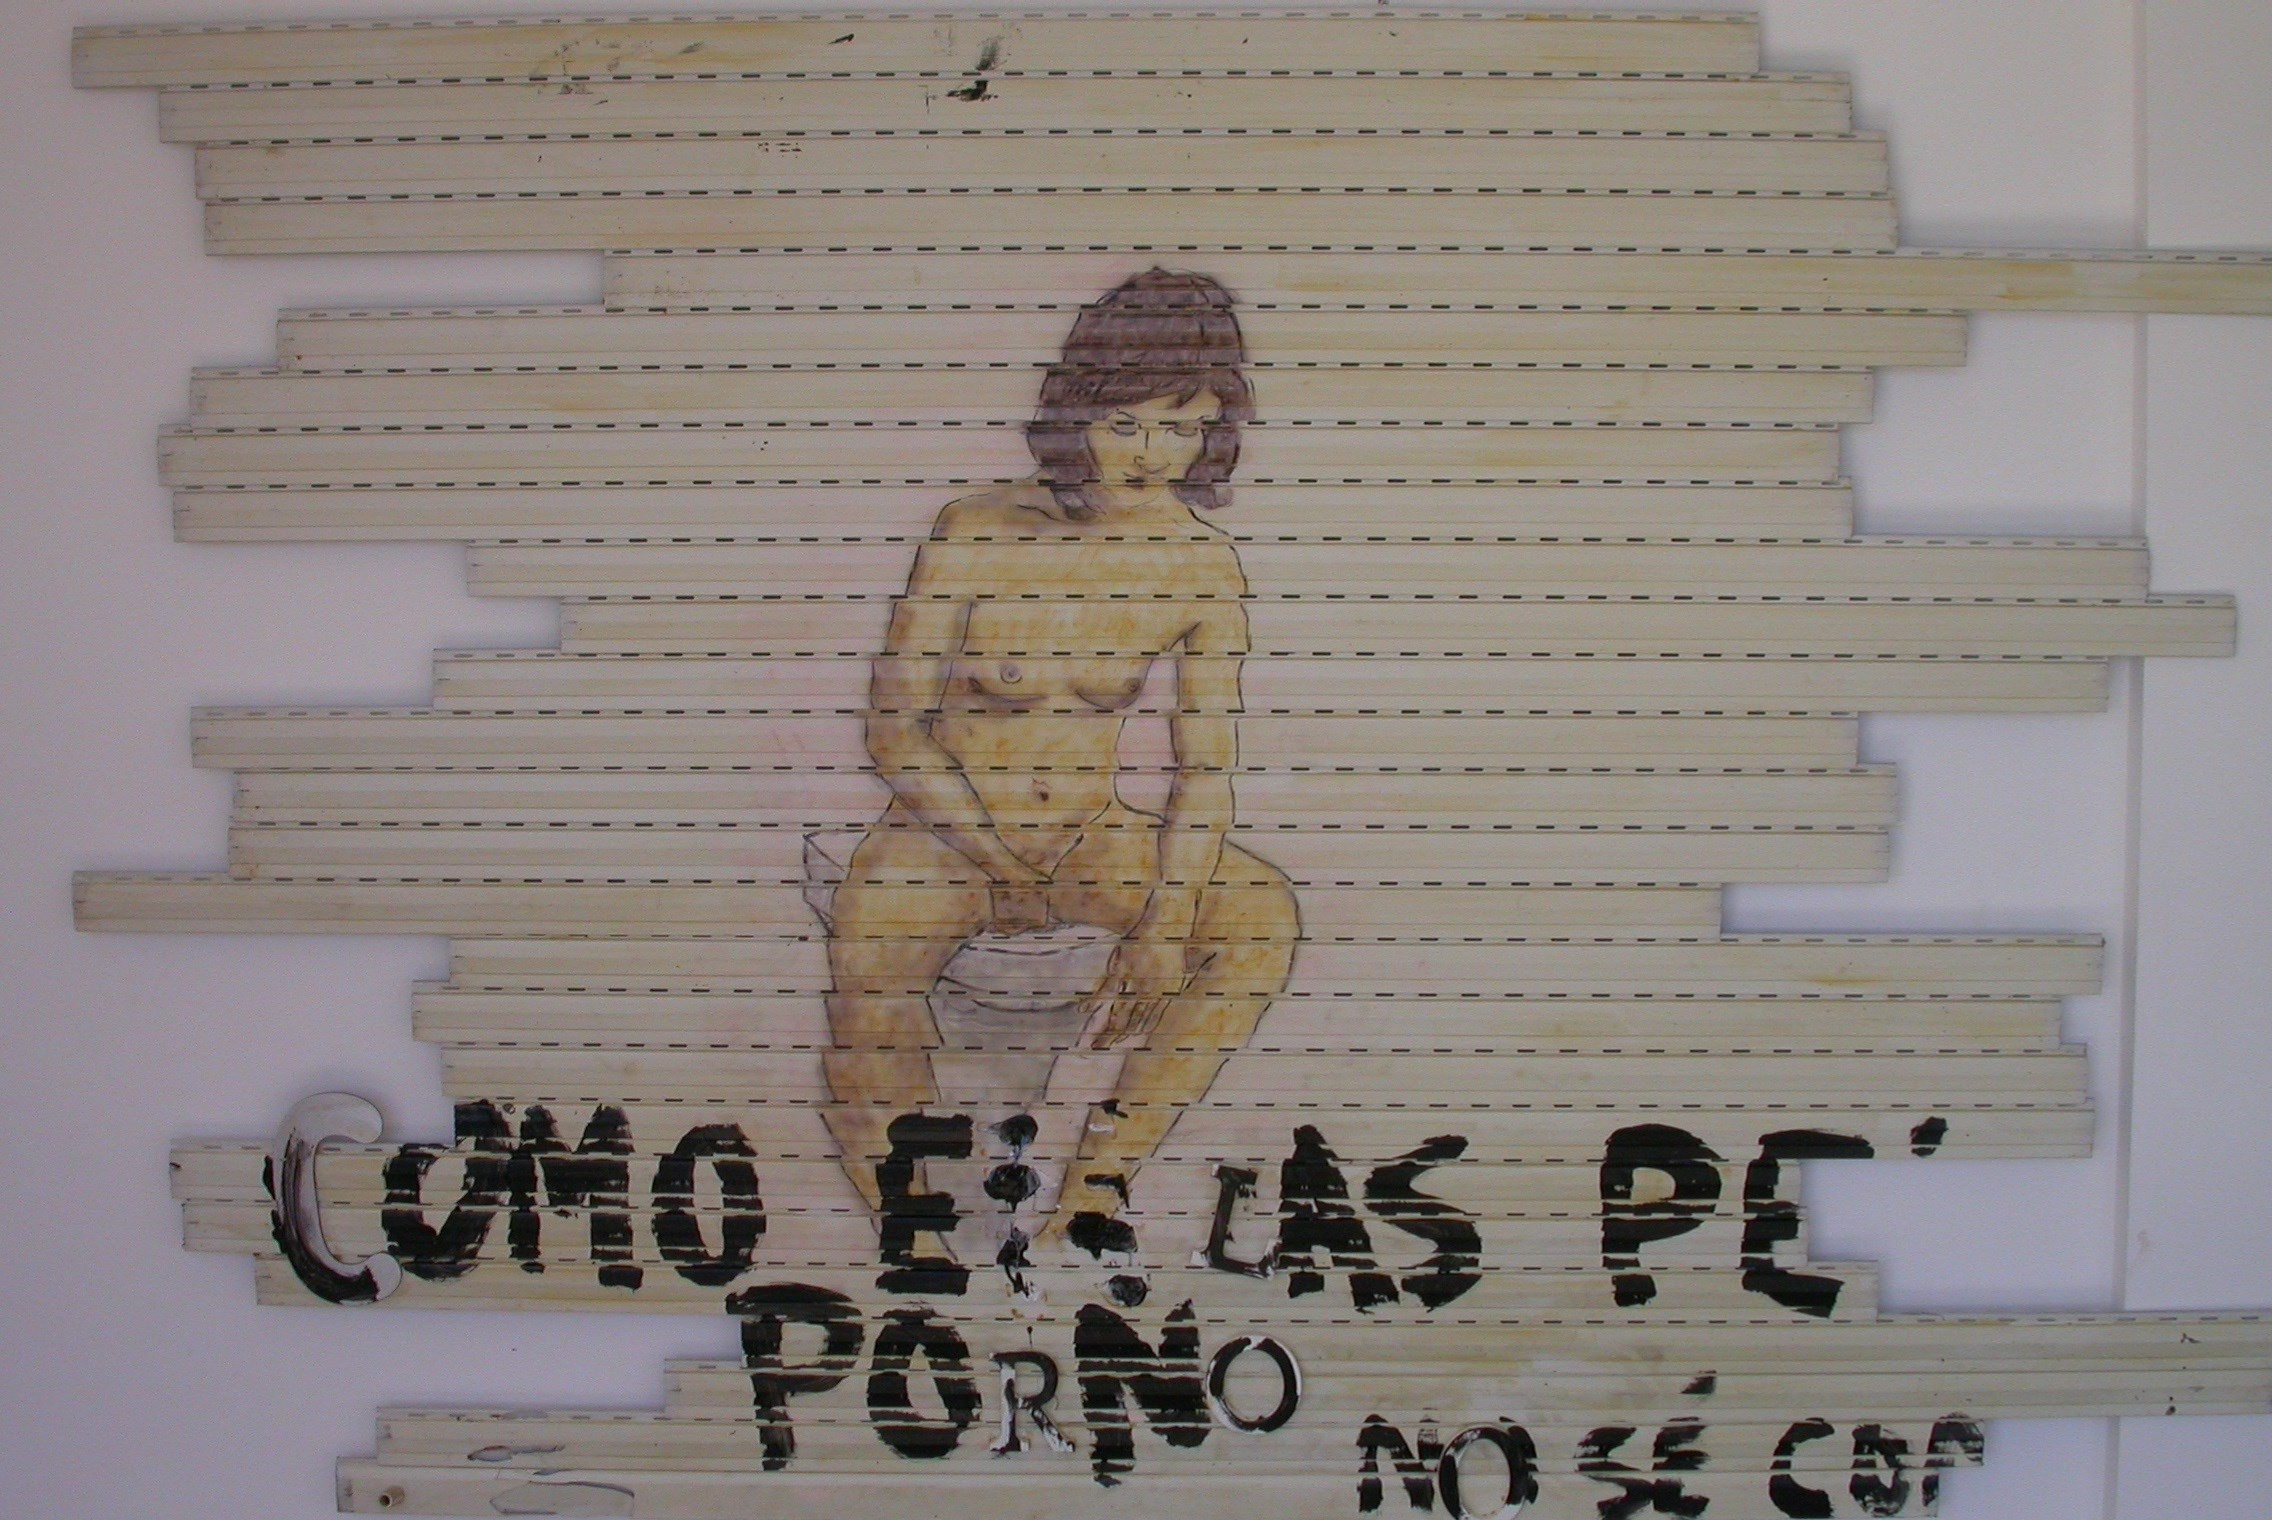 Como en las películas porno, original Big Mixed Technique Painting by Ricardo de Campos